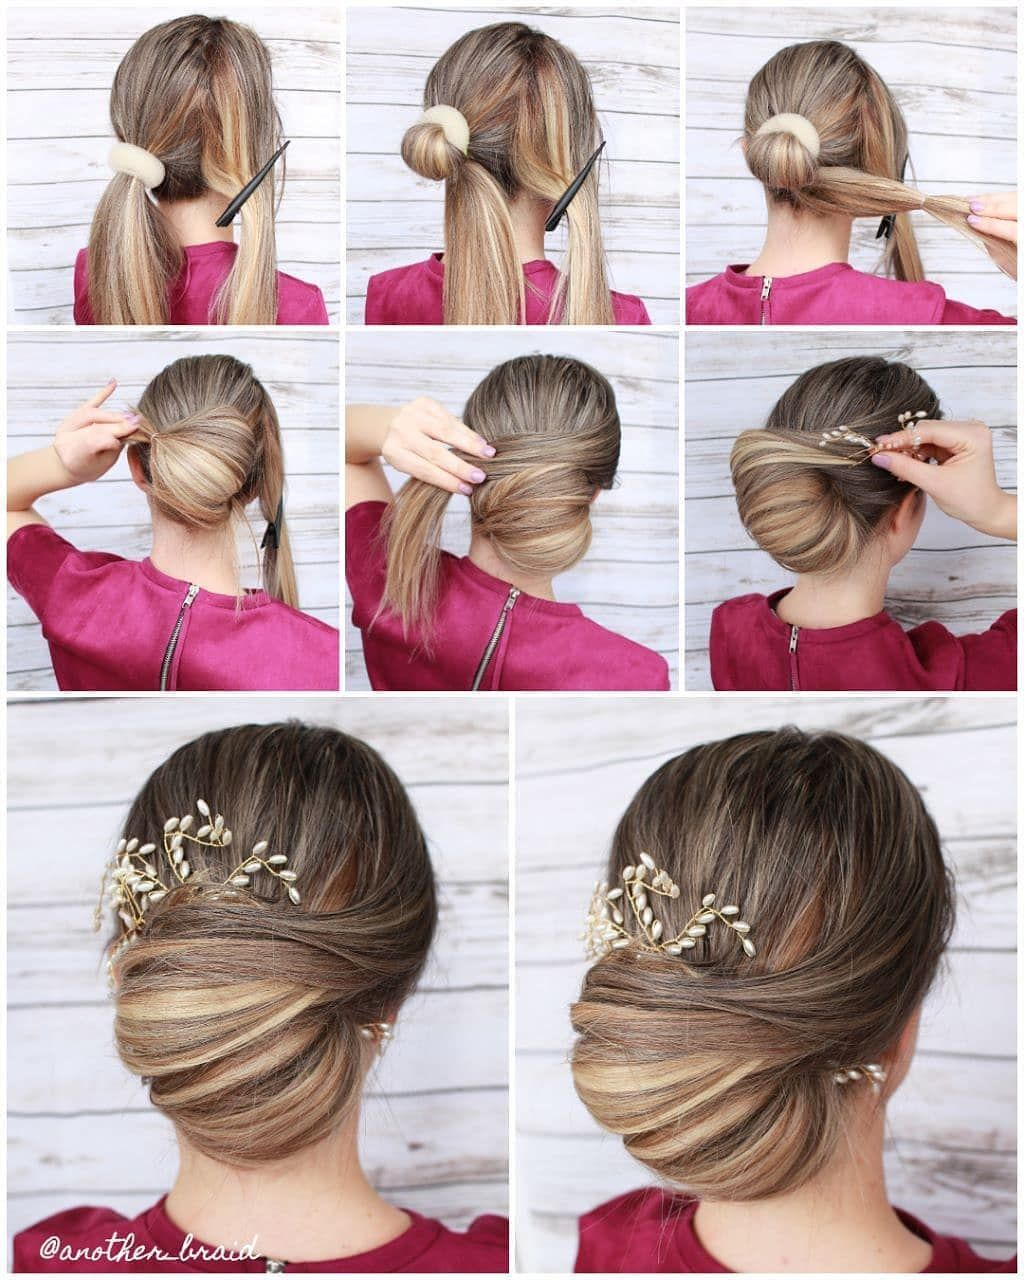 Quick & simple Updo tutorial